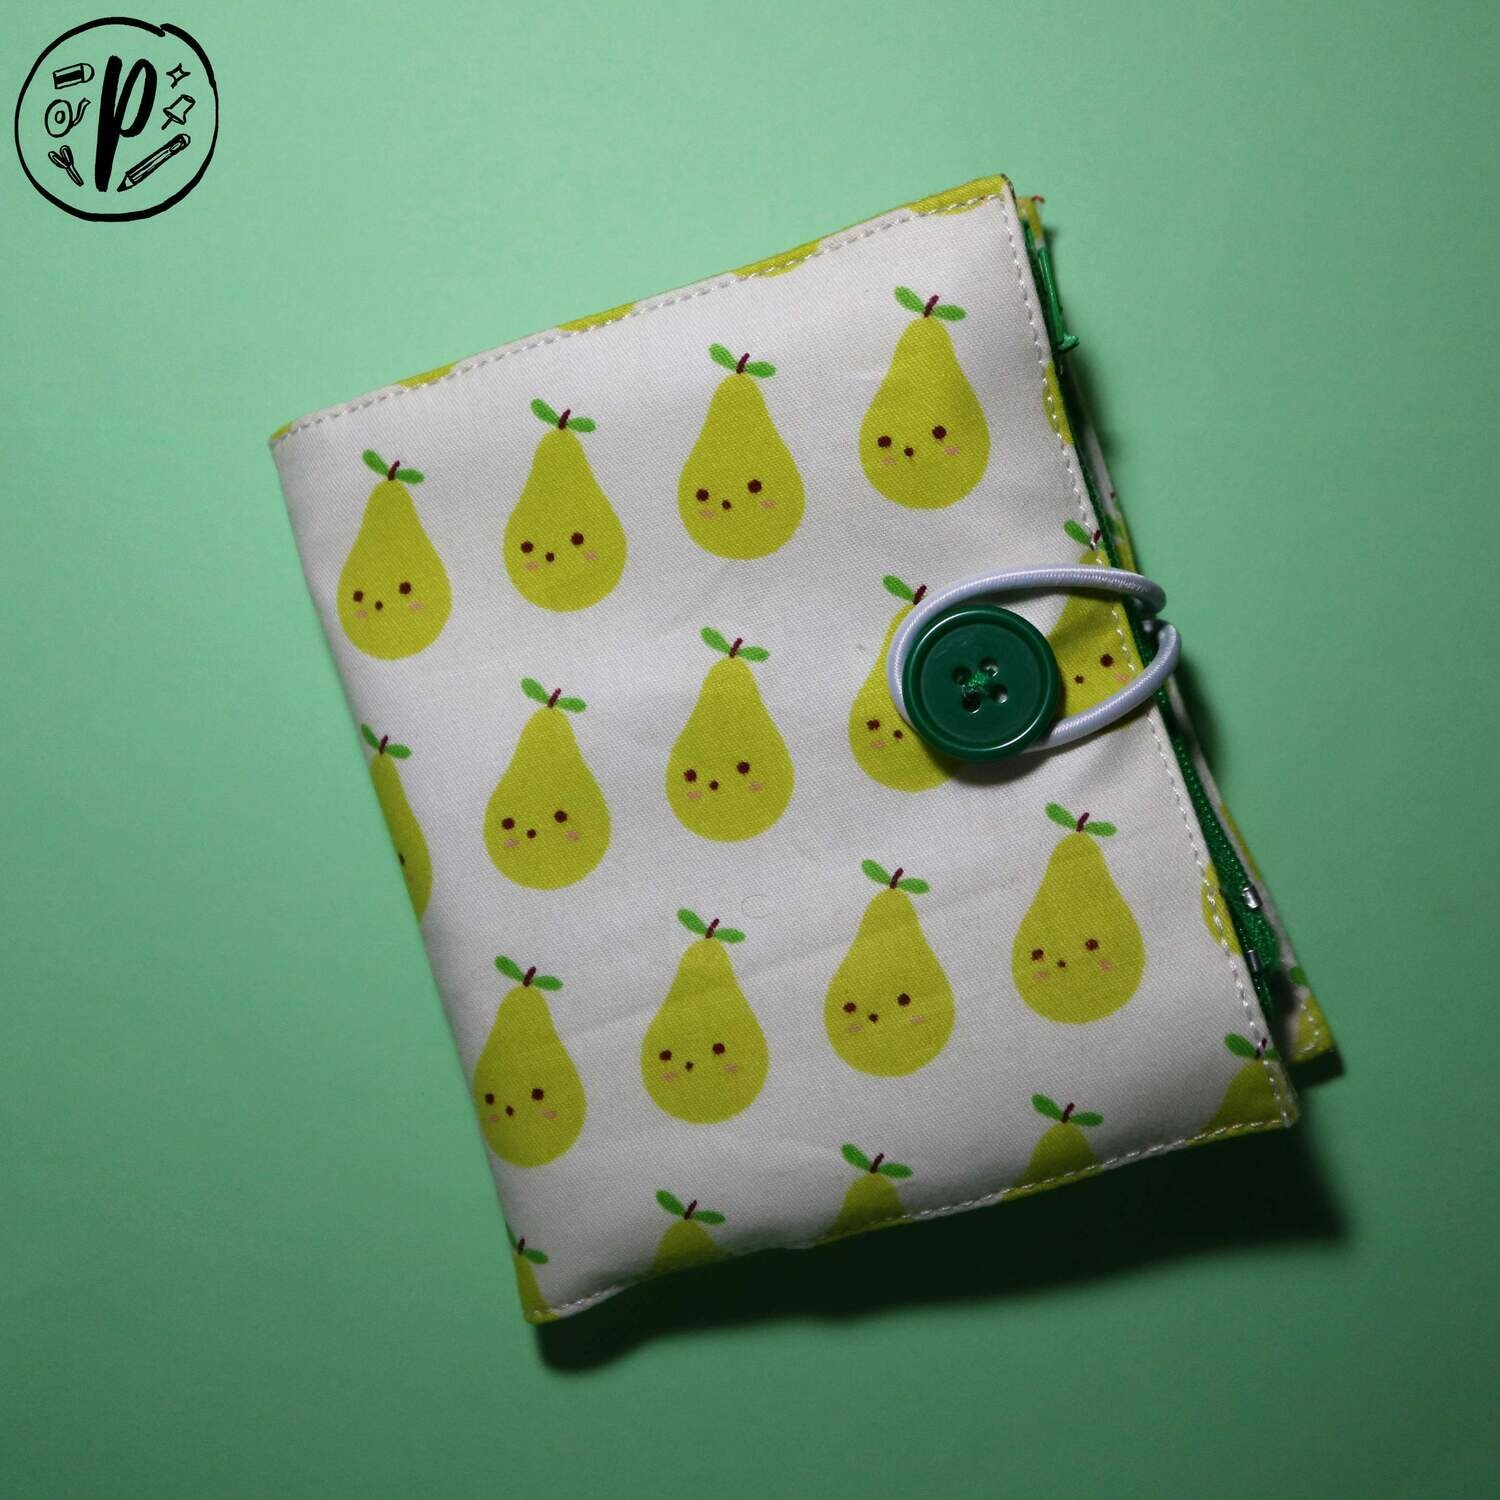 Mini Organizers (Pear Design)